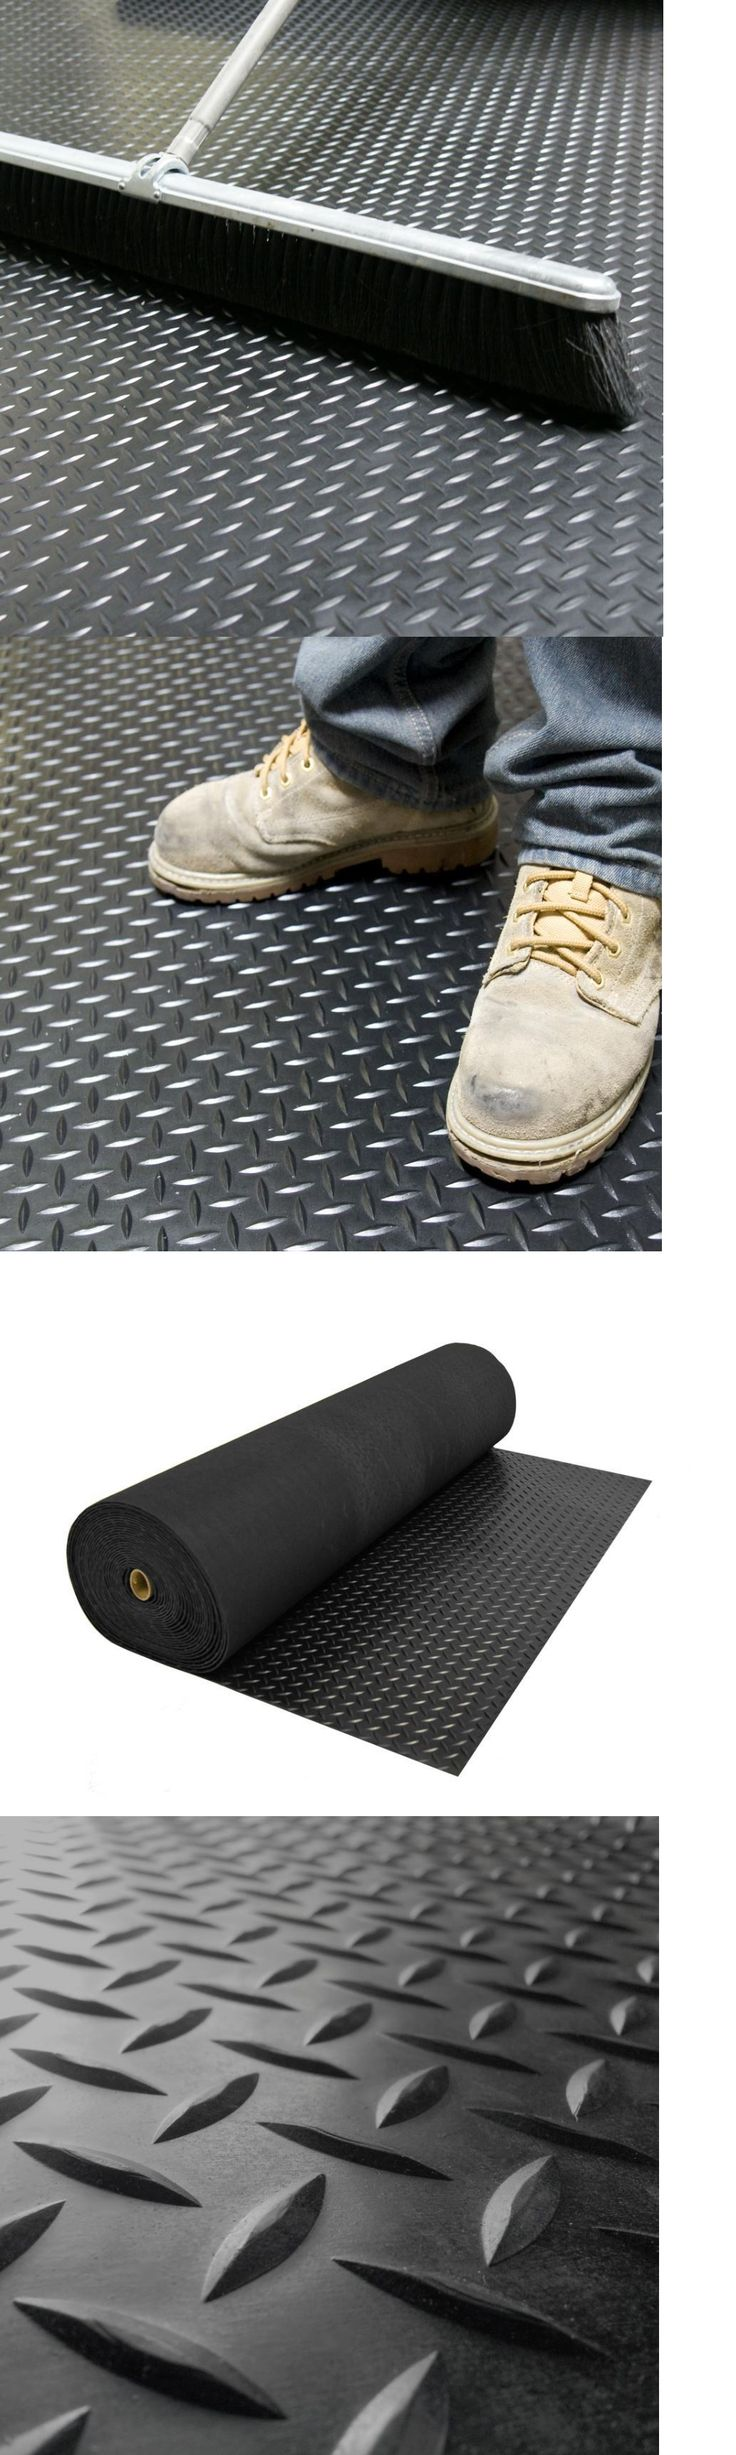 Rubber floor mat paint - Equipment Mats And Flooring 179806 Garage Floor Protector Rubber Flooring For Home Gym Black Diamond